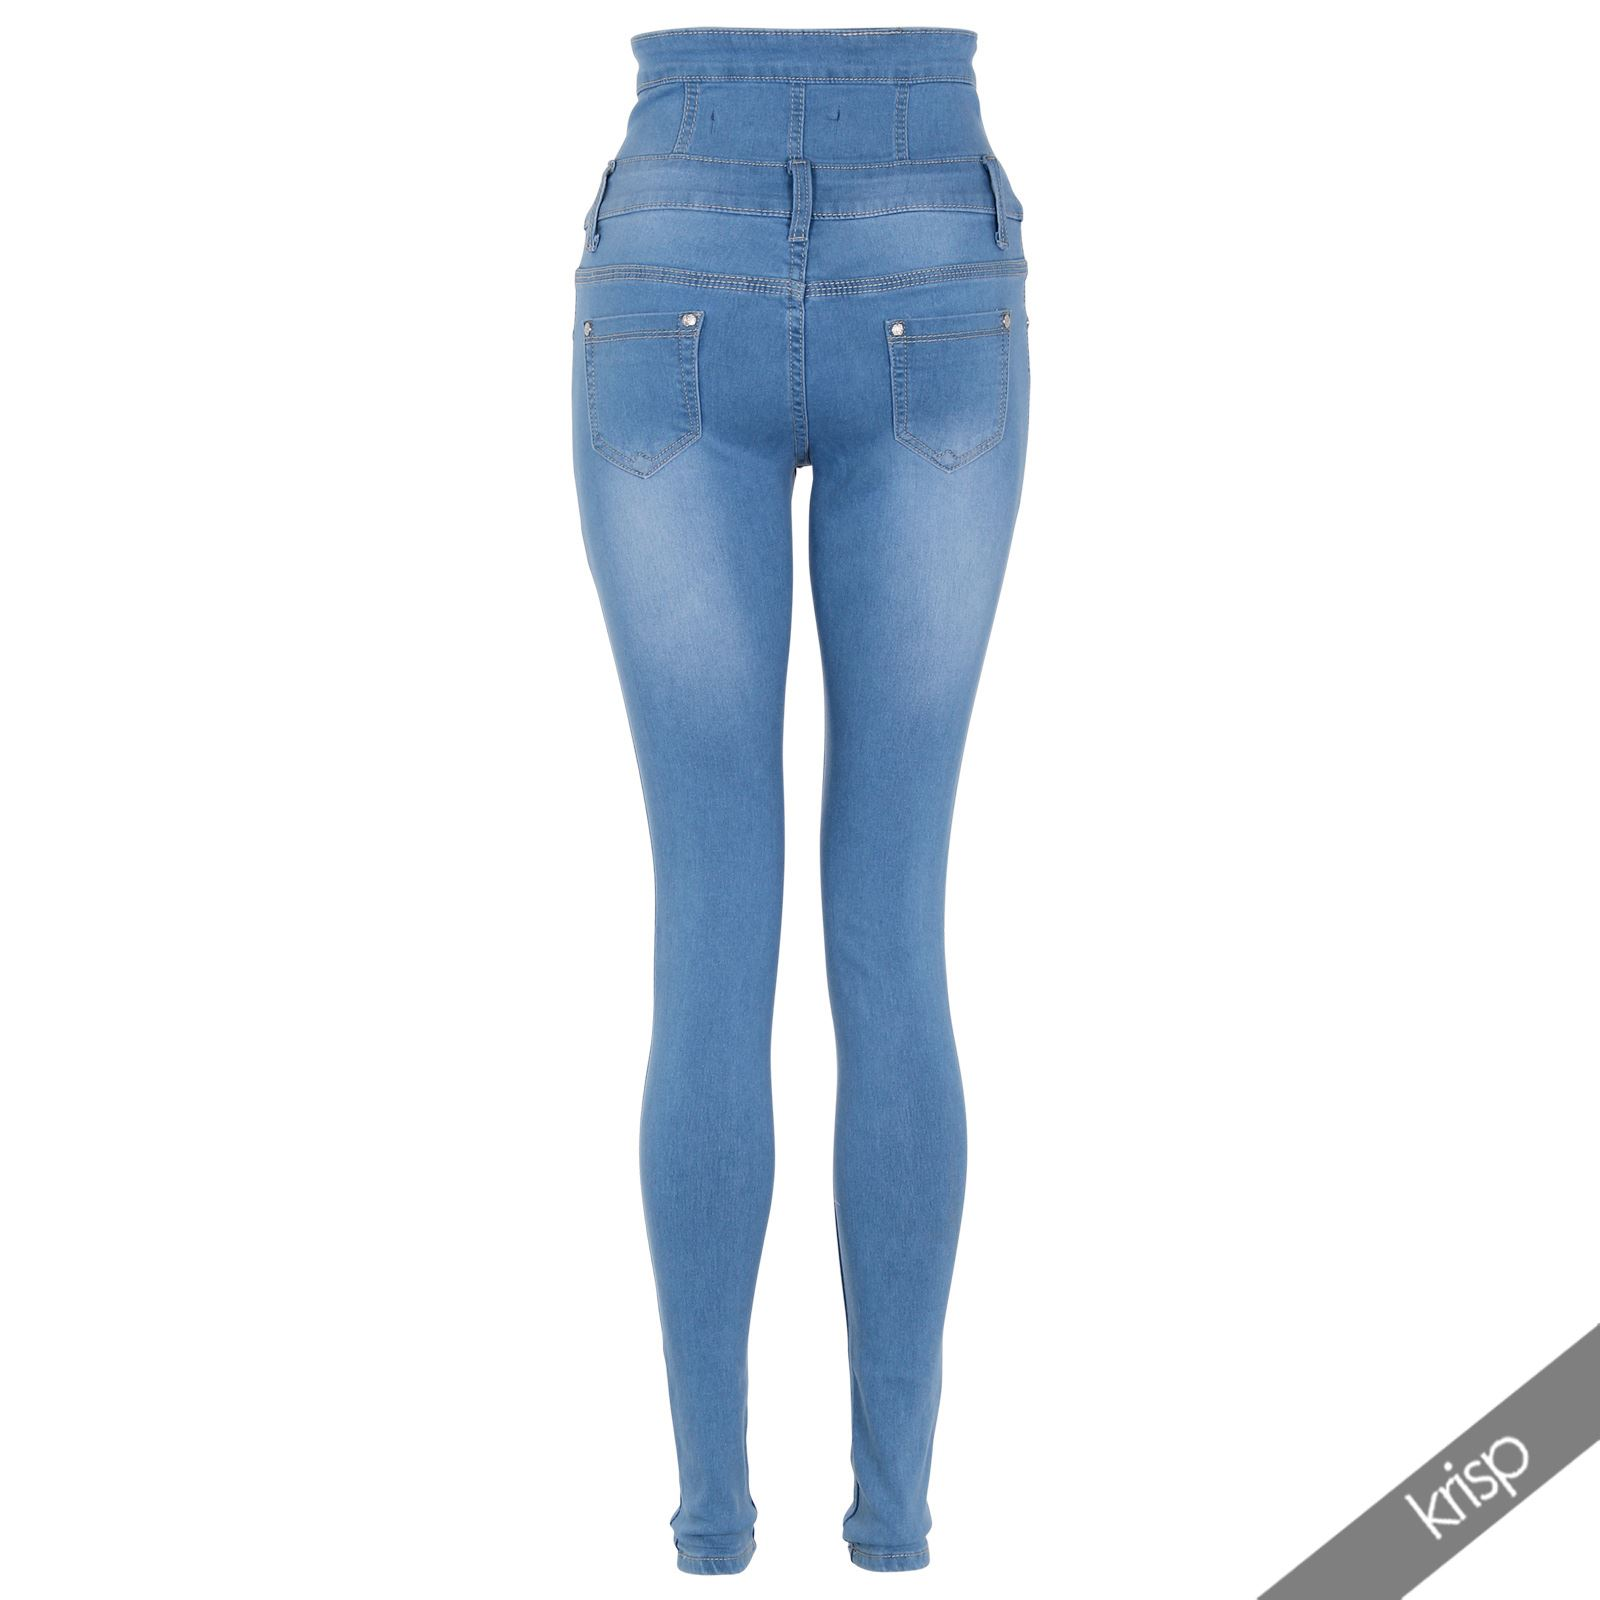 High Waisted Jeans. invalid category id. Search Product Result. Product - Diamante Women's Jeans · Missy Size · High Waist · Push Up · Style M Product Image. Price $ Product Title. Diamante Women's Jeans · Missy Size · High Waist · Push Up · Style M Items sold by truedfil3gz.gq that are marked eligible on the.